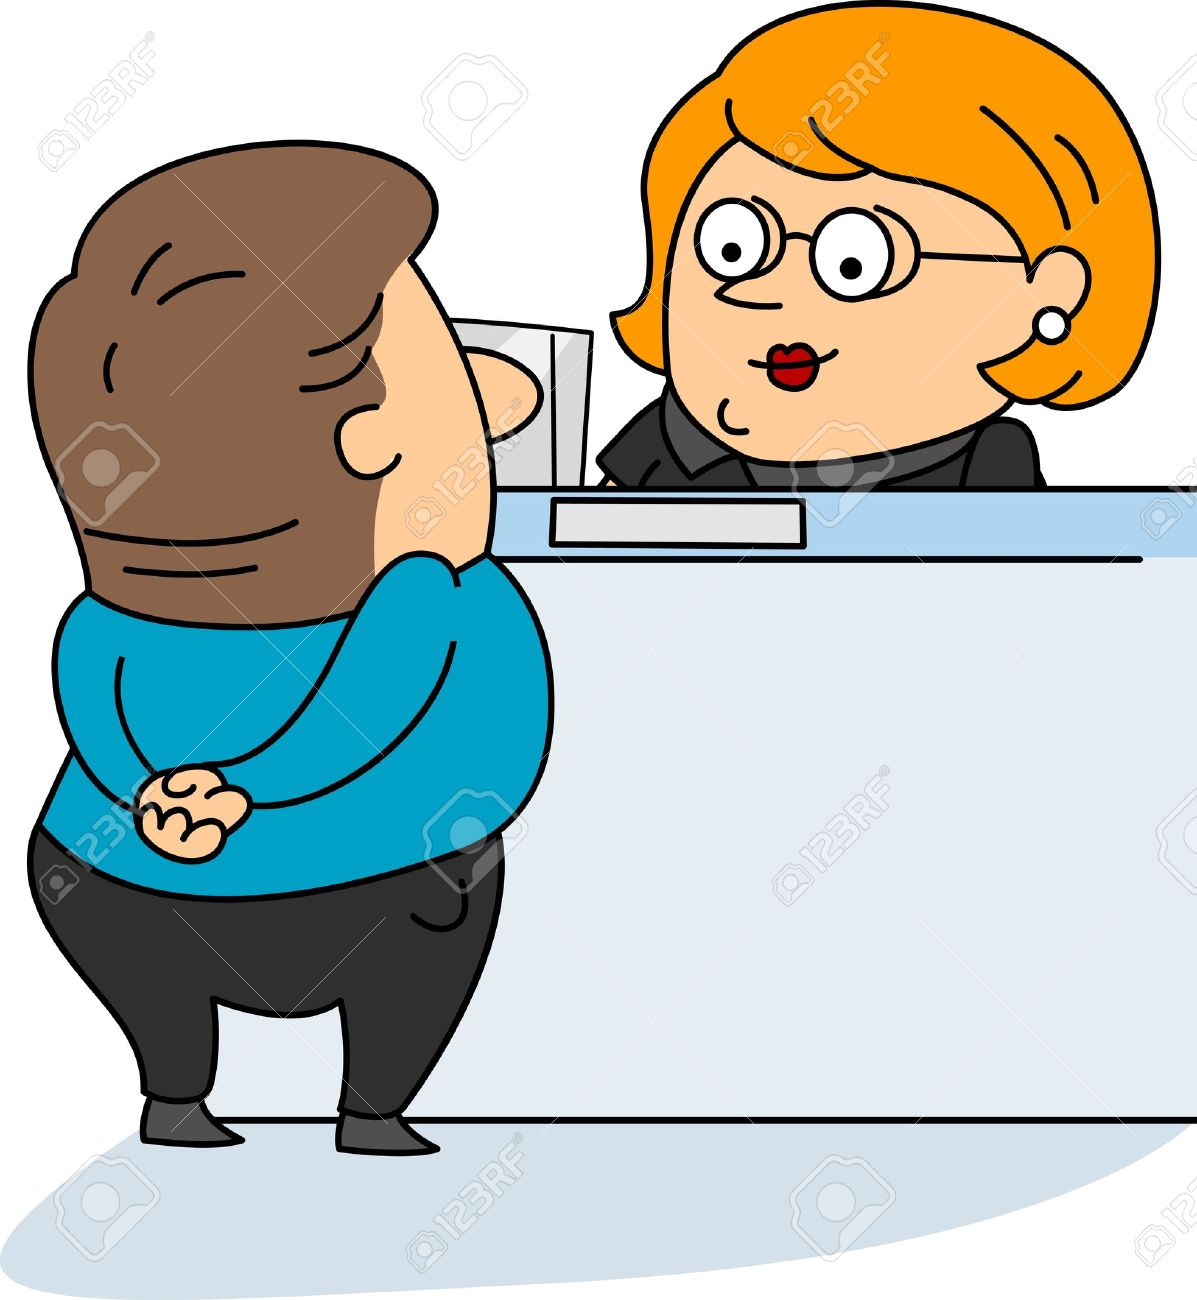 bank cashier clipart bank teller illustrations and clipart 730 can stock photo